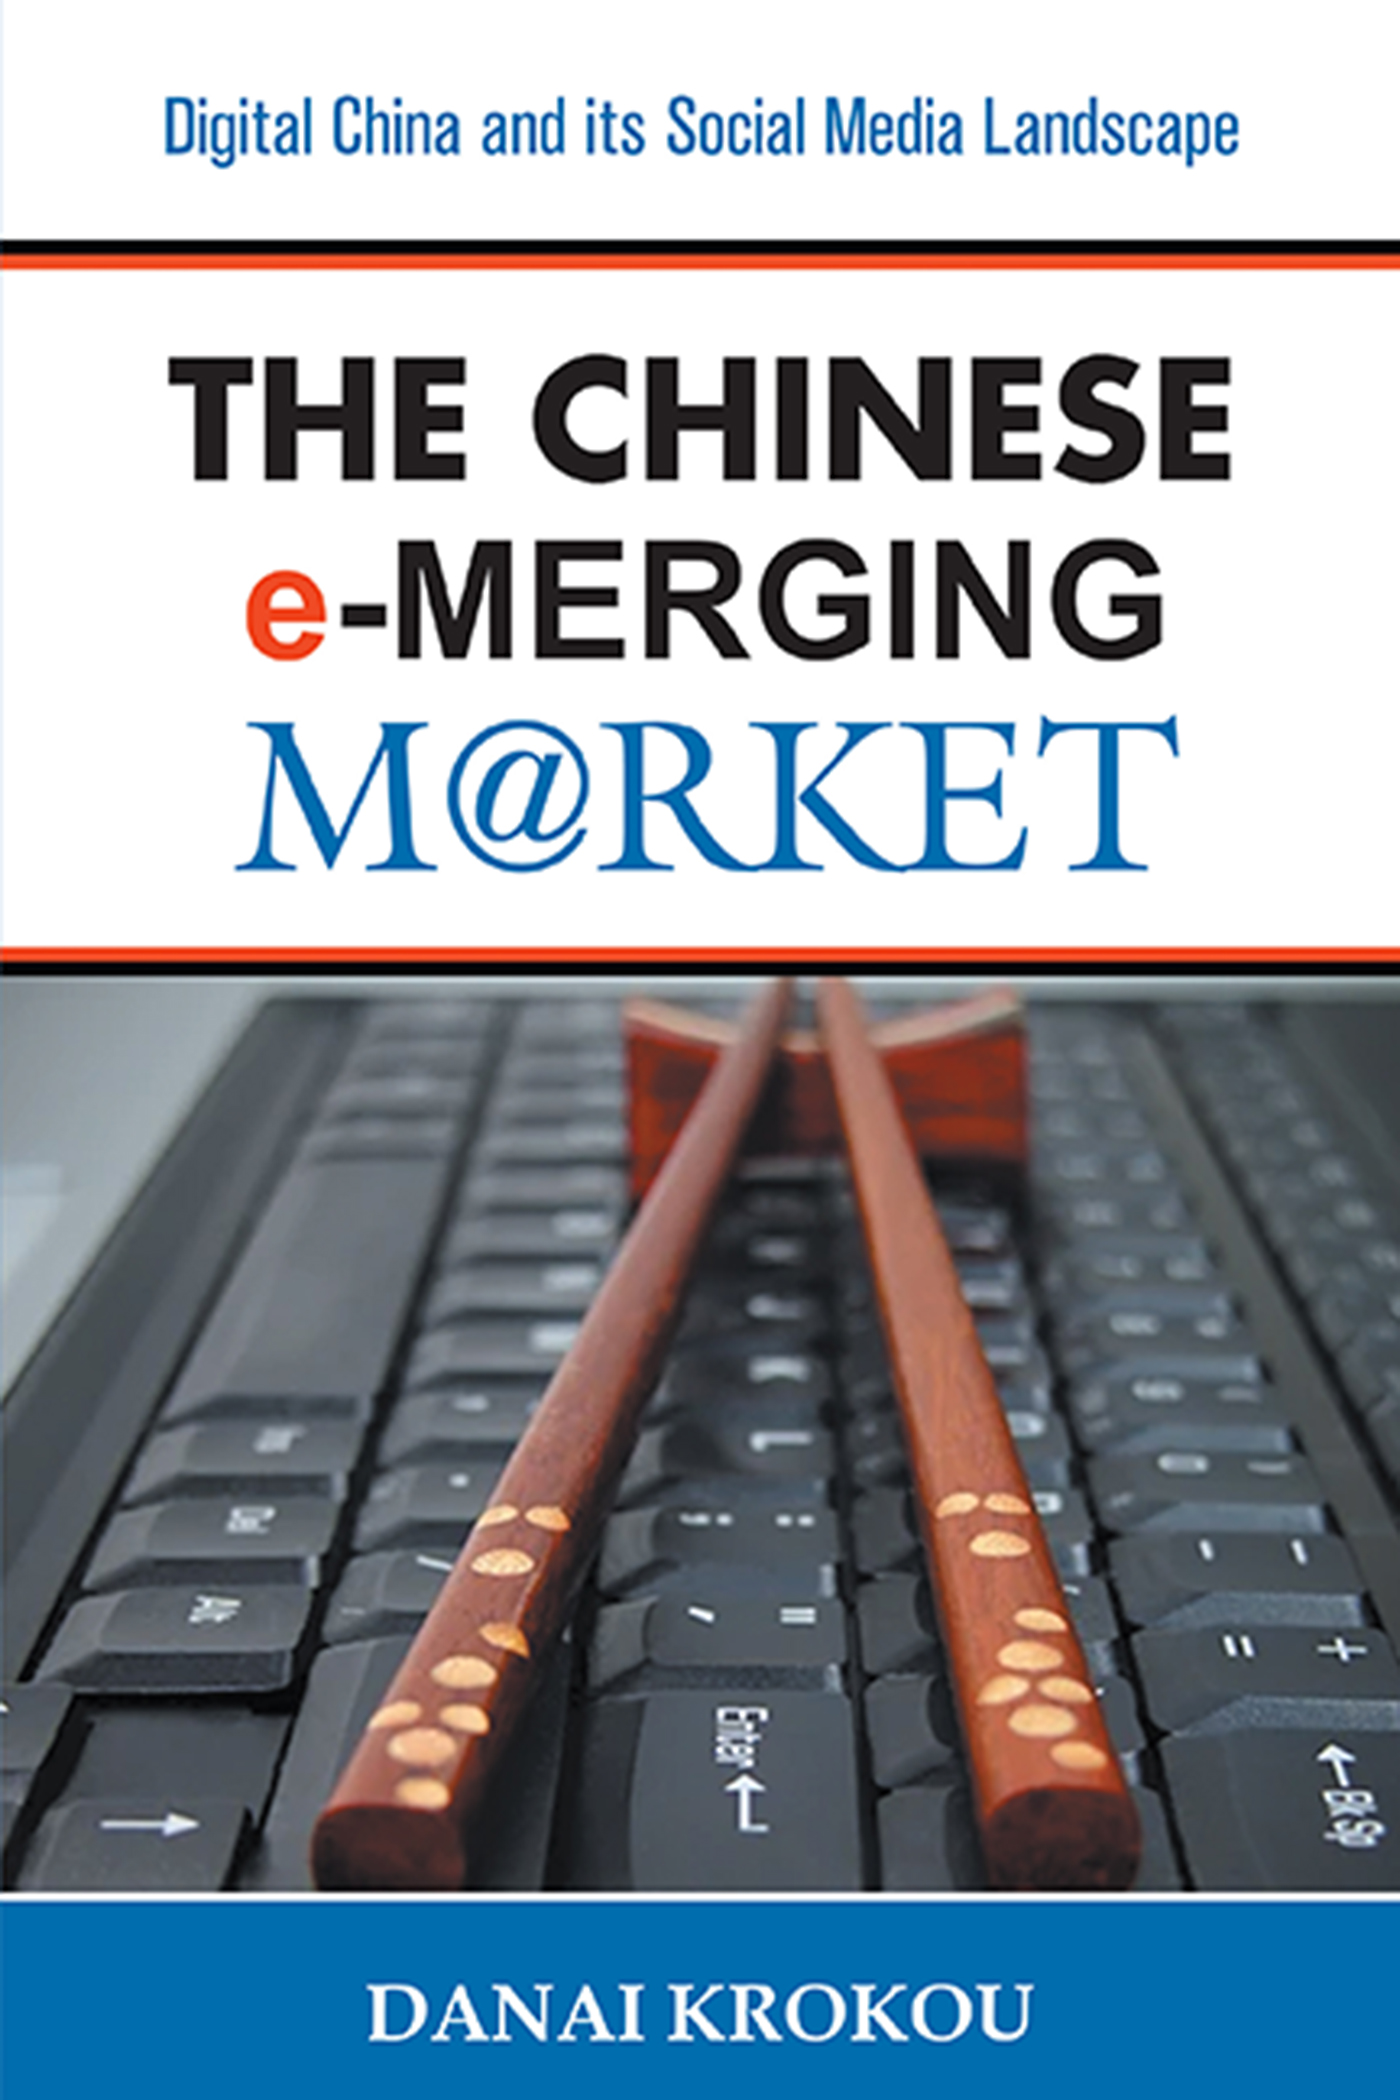 The Chinese e-Merging Market, Second Edition: Digital China and its Social Media Landscape